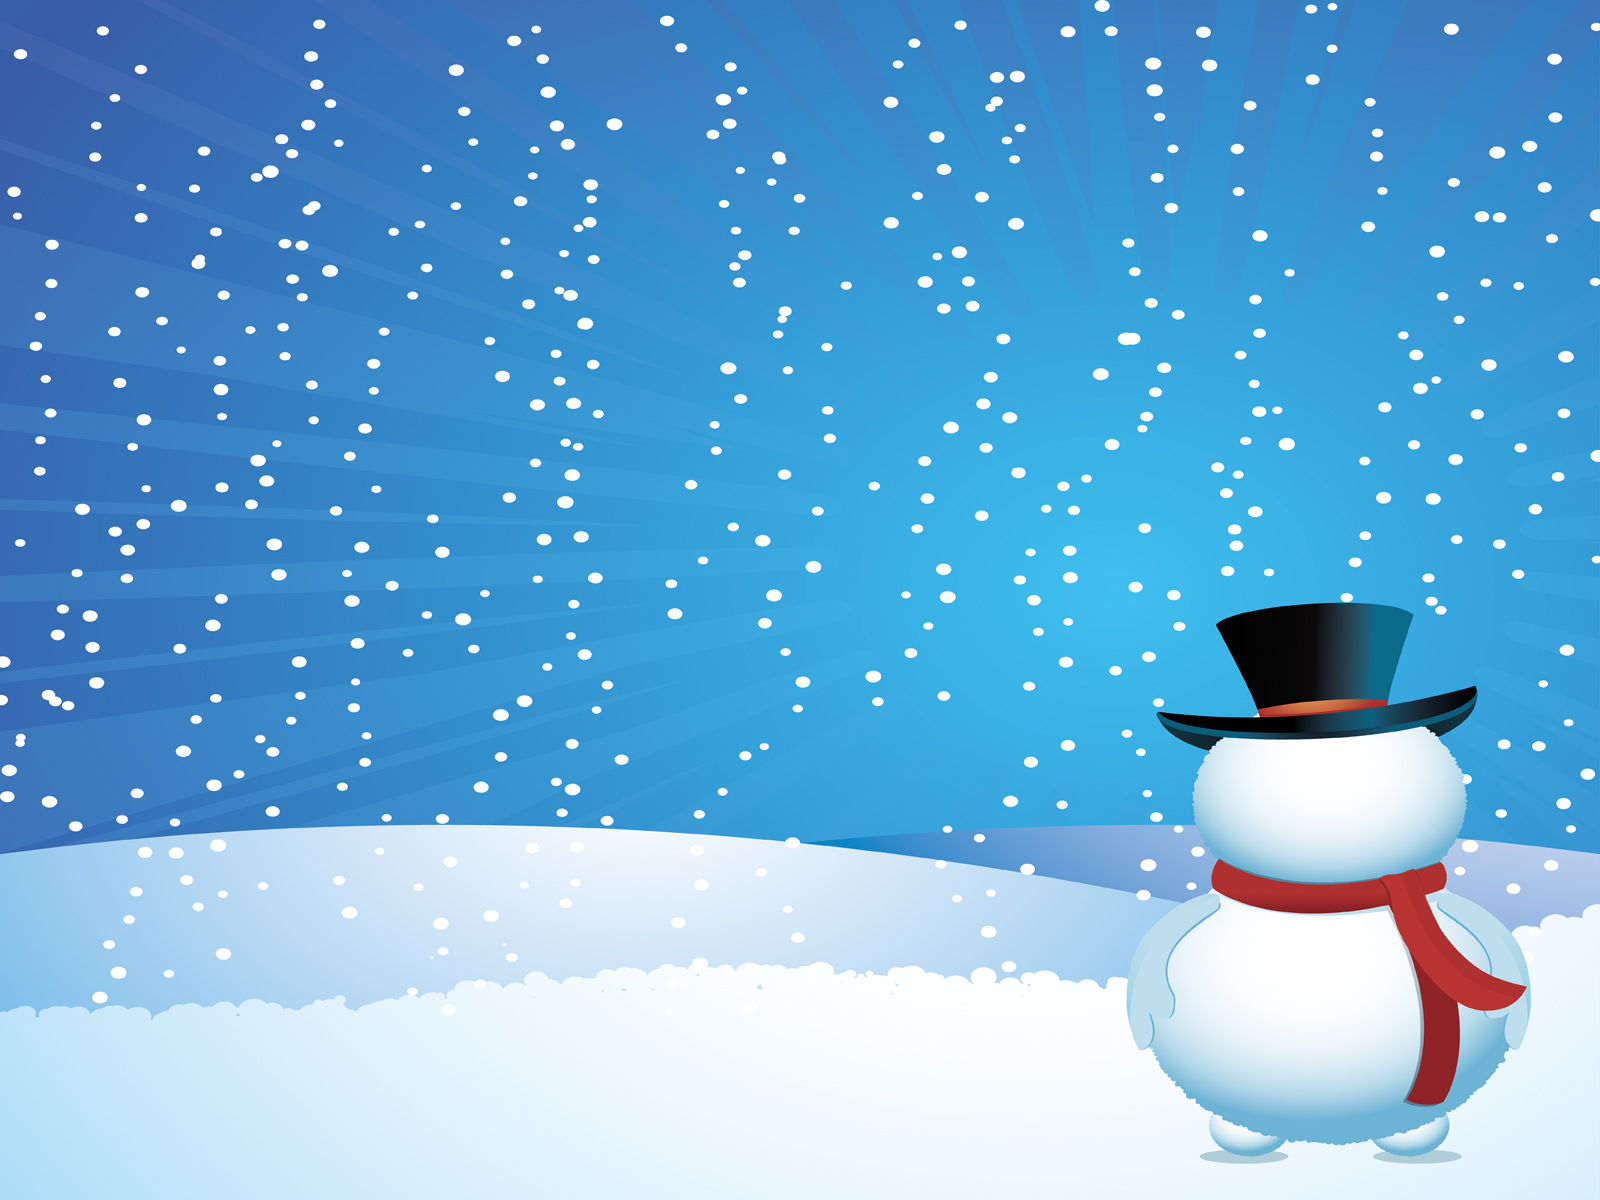 free christmas powerpoint templates - snow man on christmas backgrounds christmas design